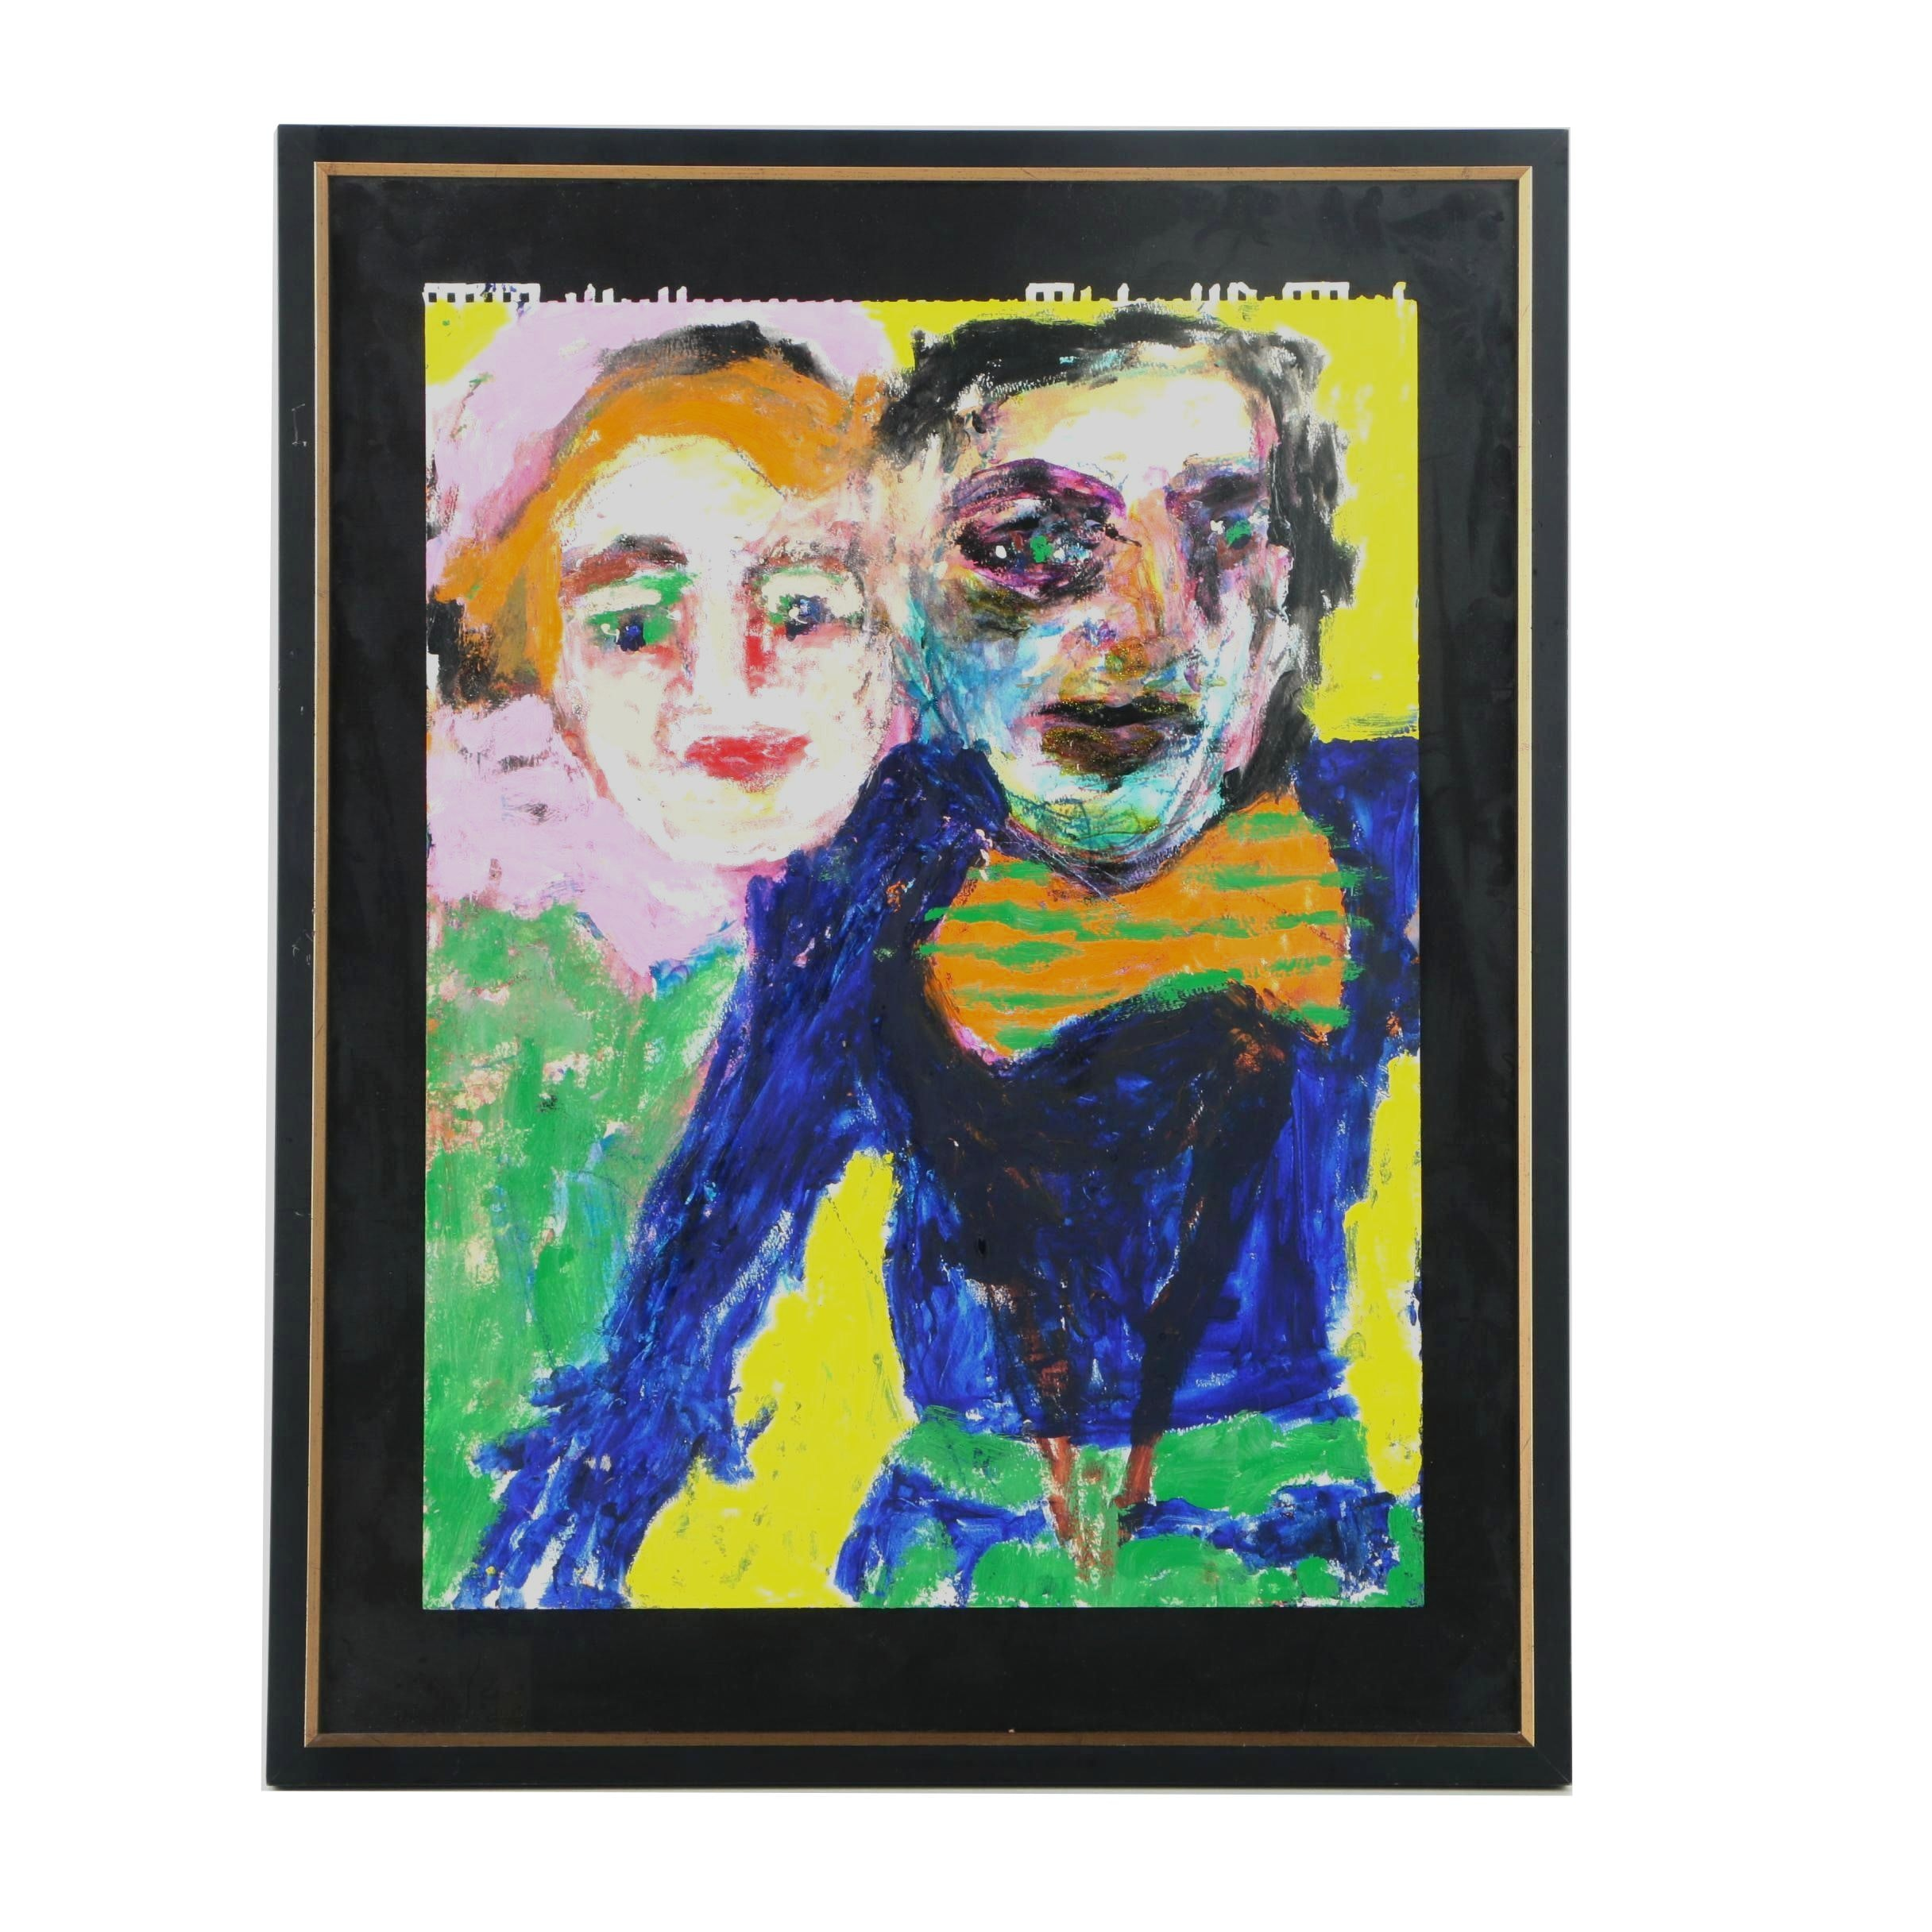 Mixed Media Painting on Paper of Two Figures